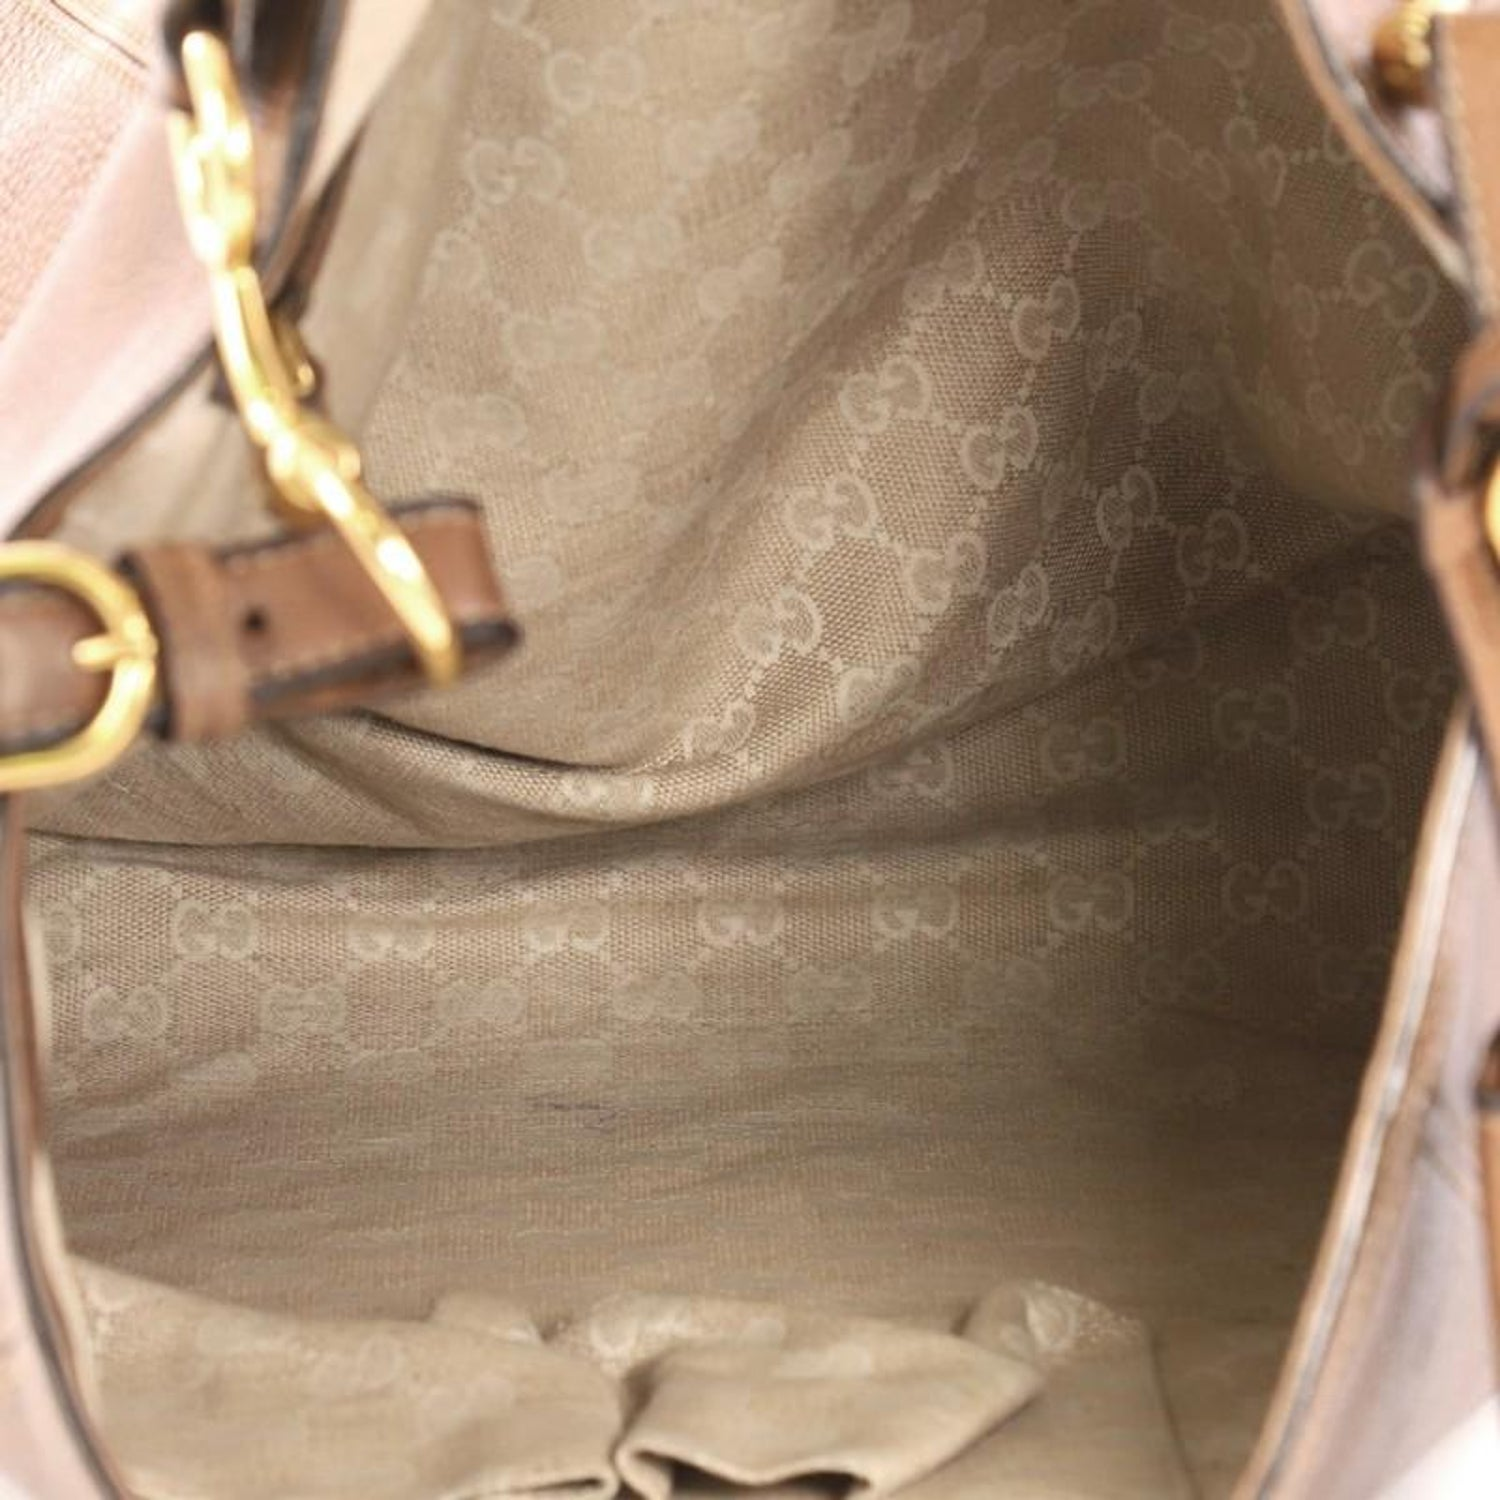 58a0cc2c7235 Gucci Harness Hobo Leather Large at 1stdibs